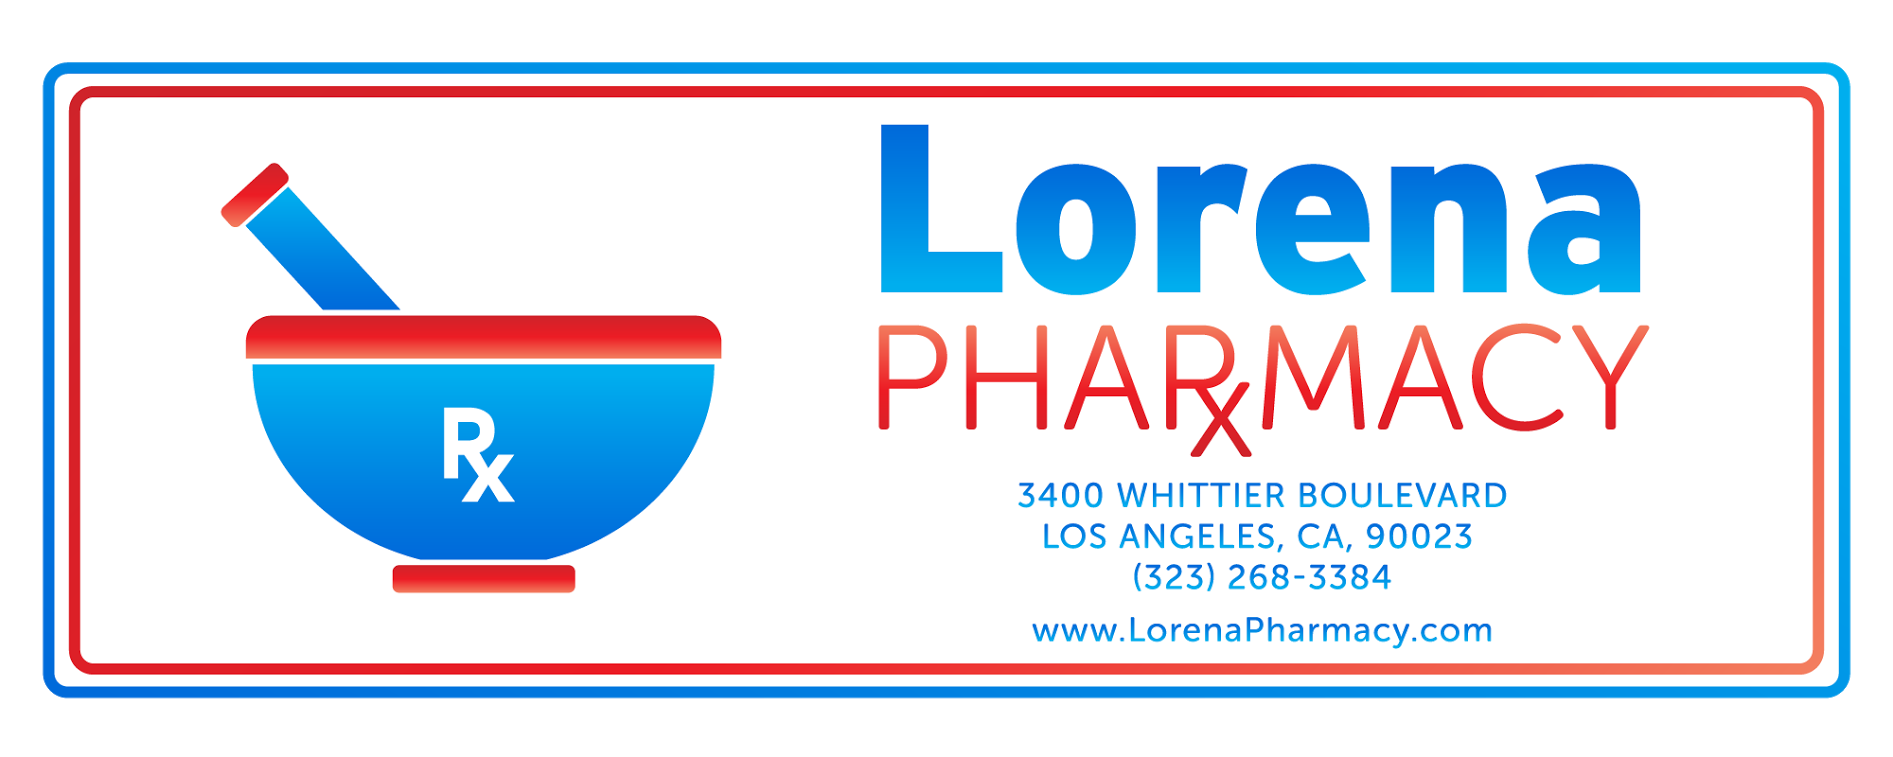 Lorena Pharmacy